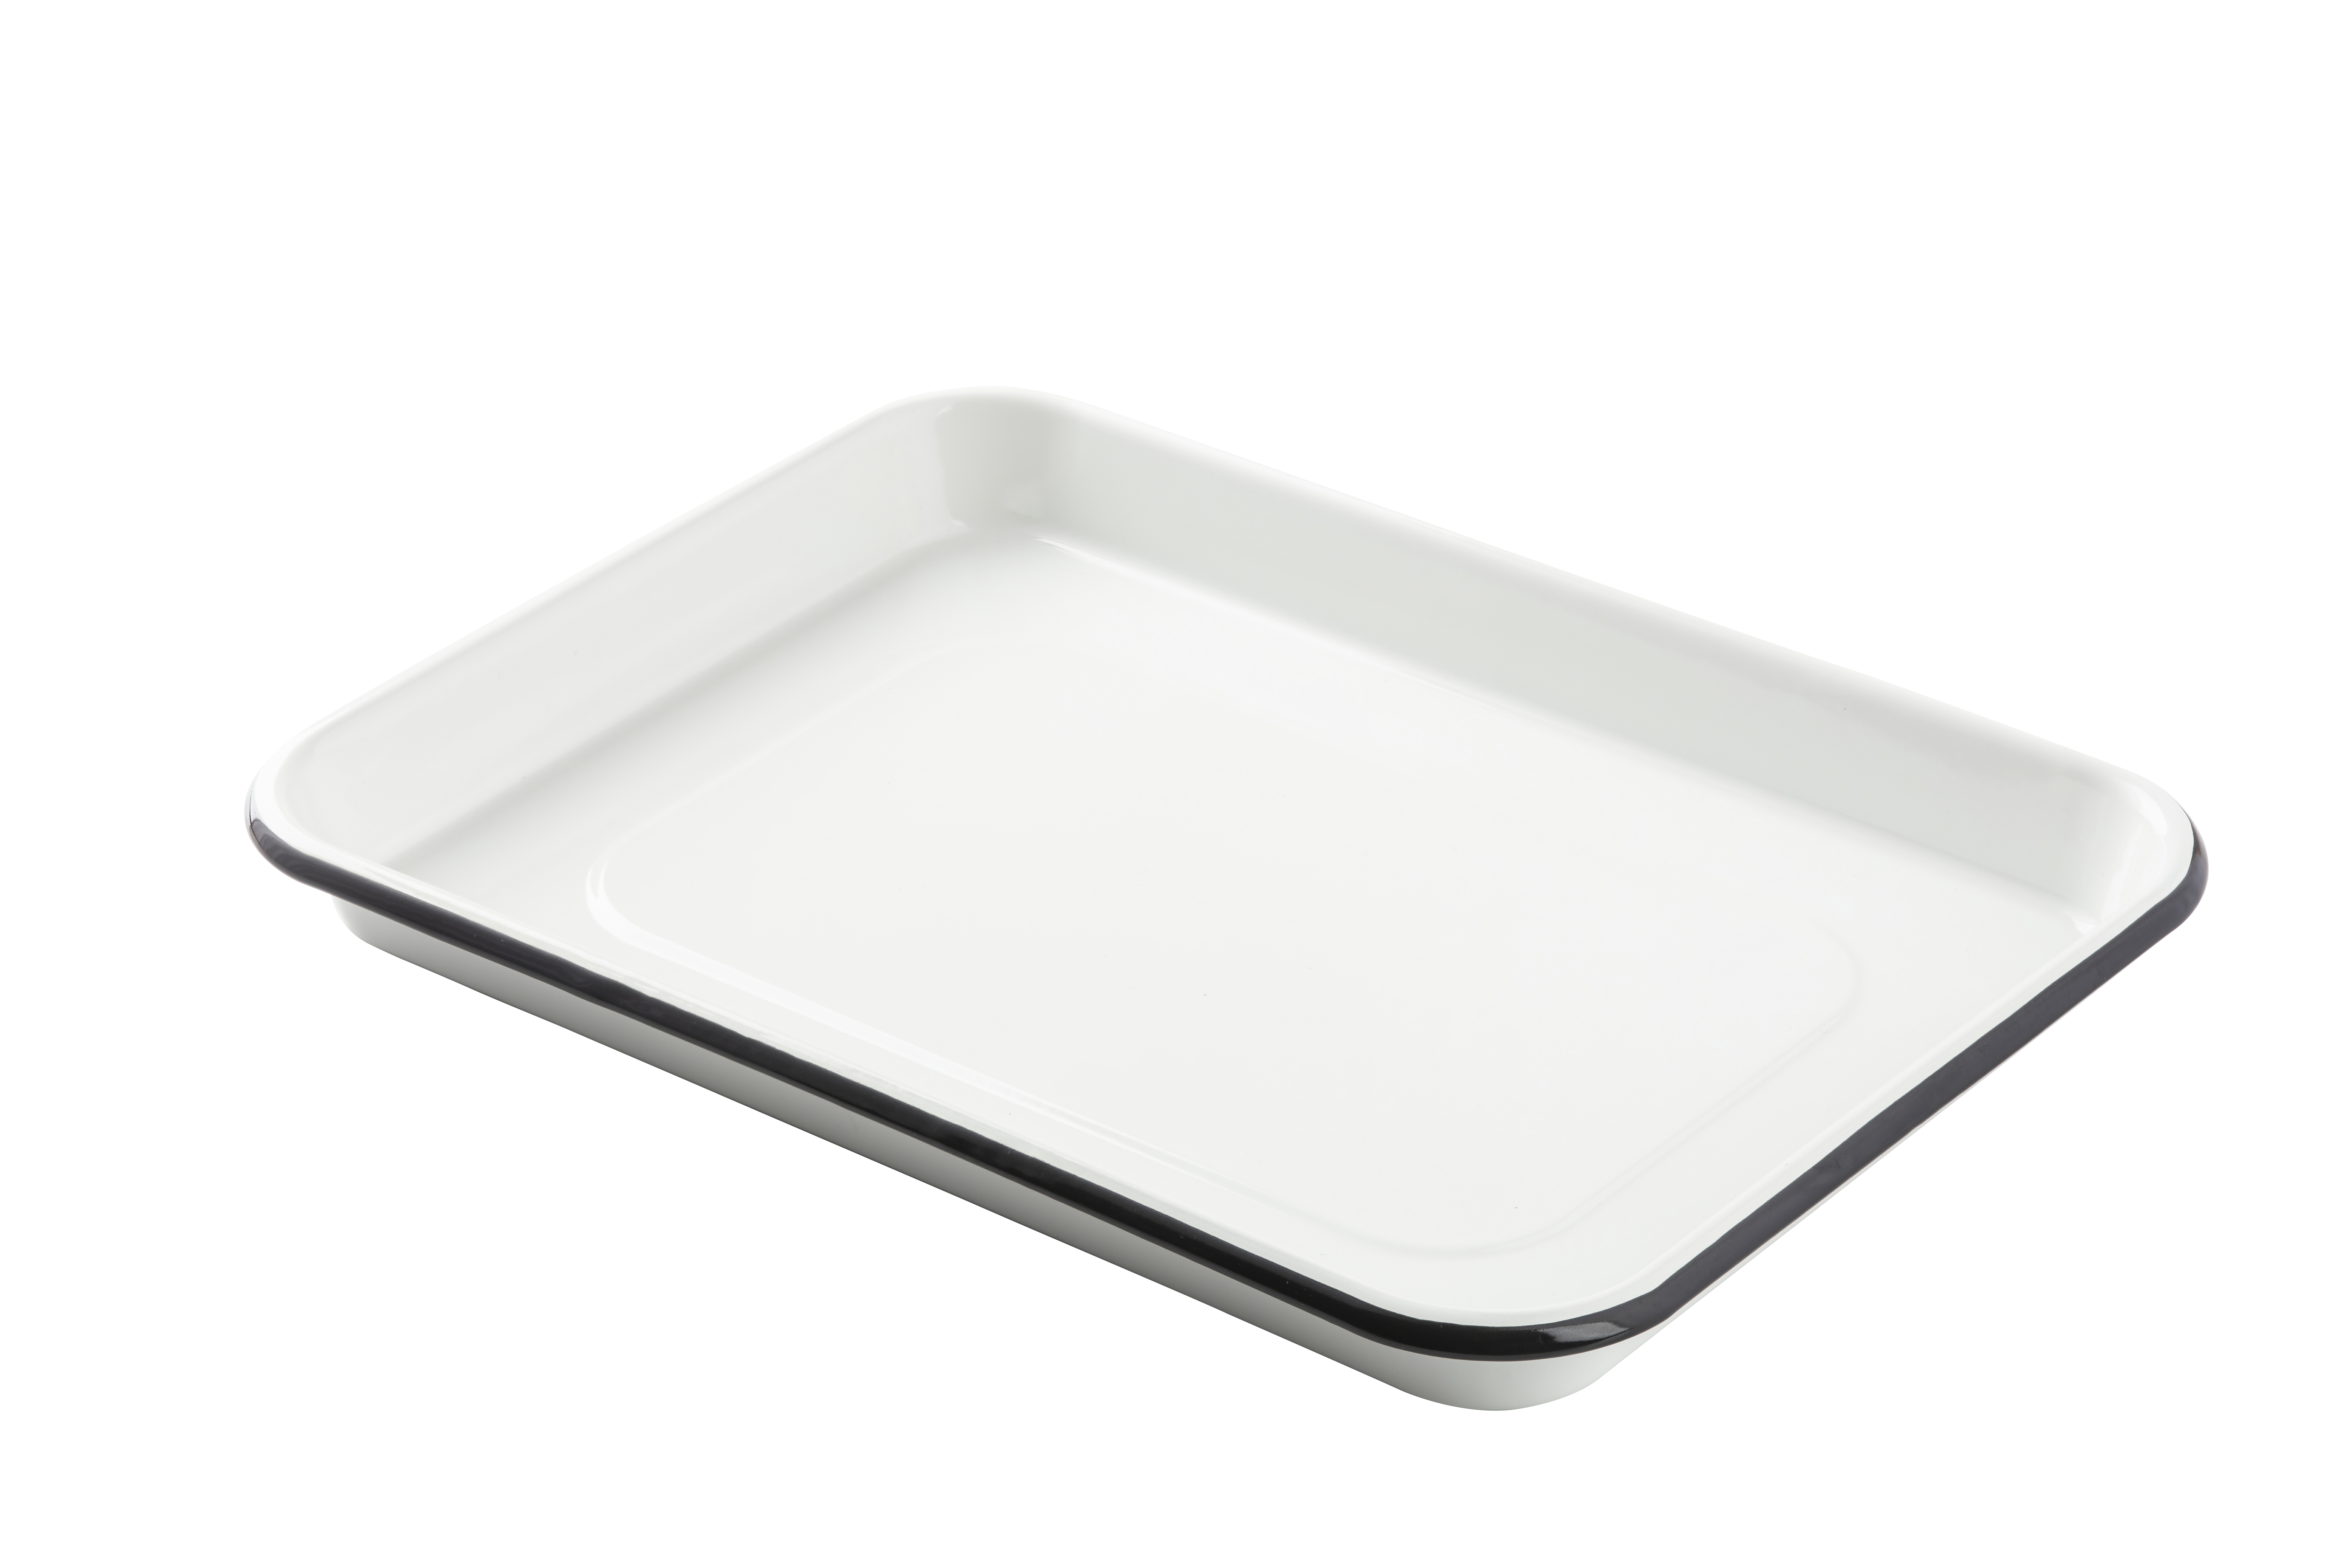 TableCraft Products 10347 sheet pans